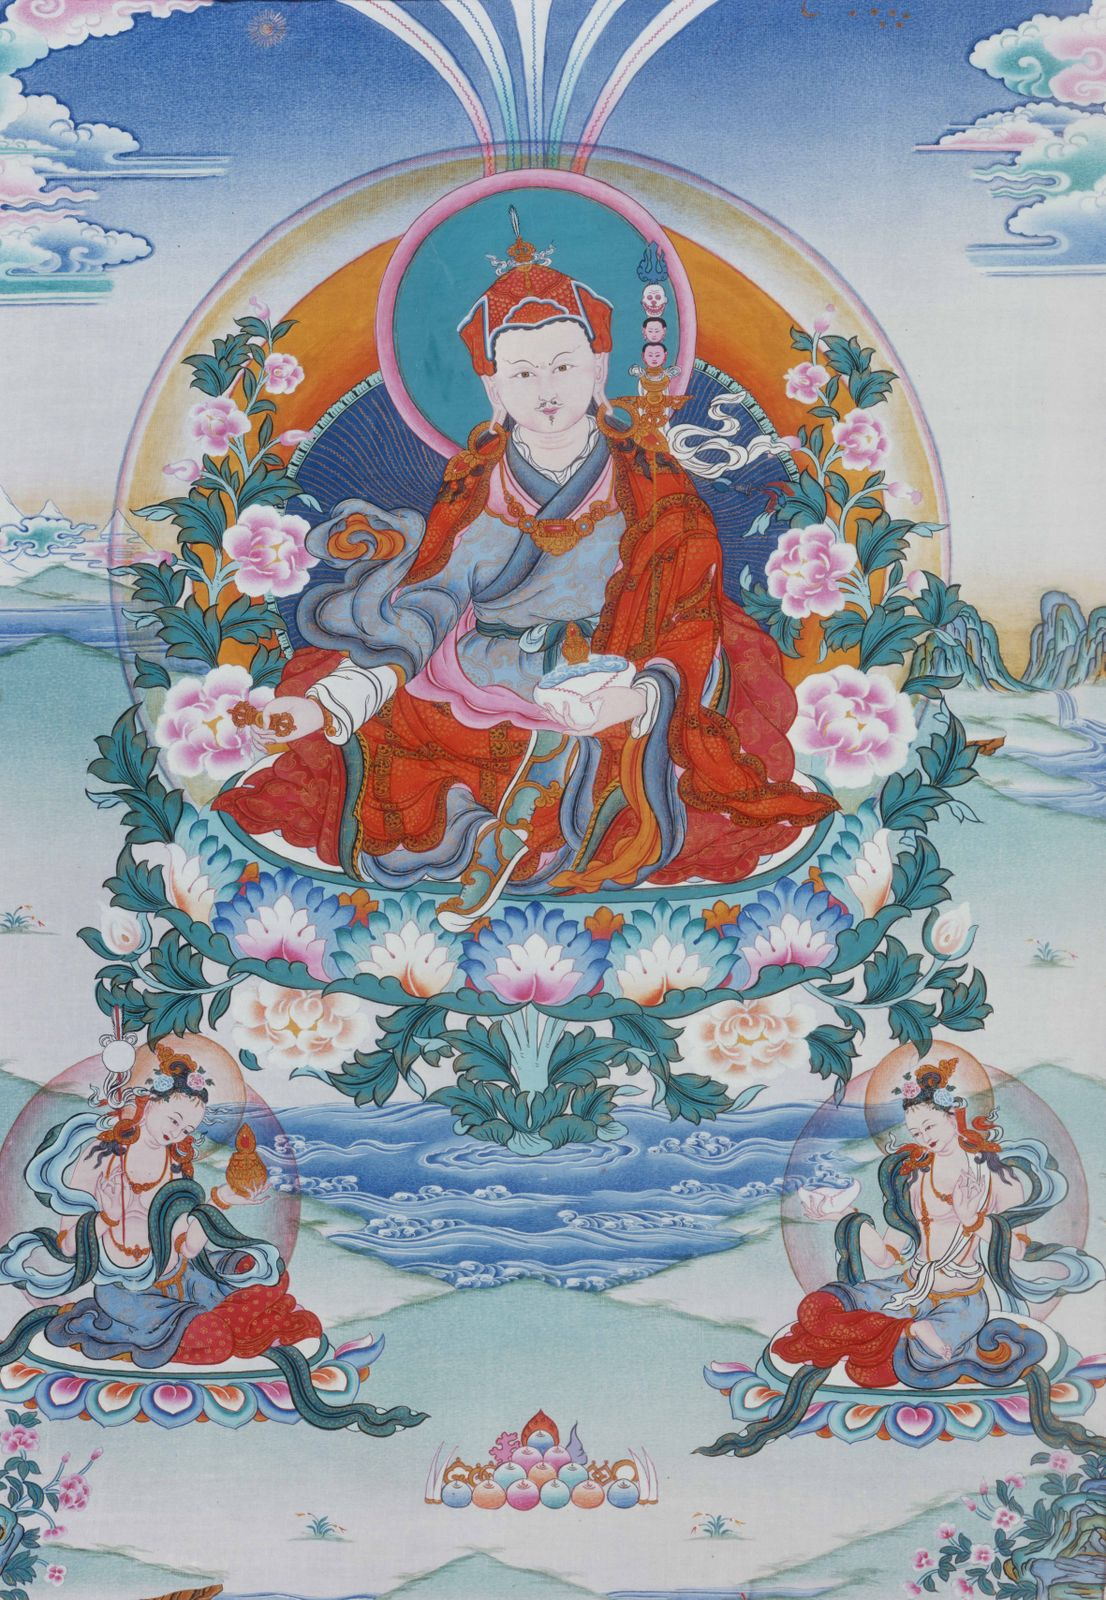 Padmasambhava - the Indian guru famed for bringing Vajrayana Buddhism to Tibet in the eighth century (CE)